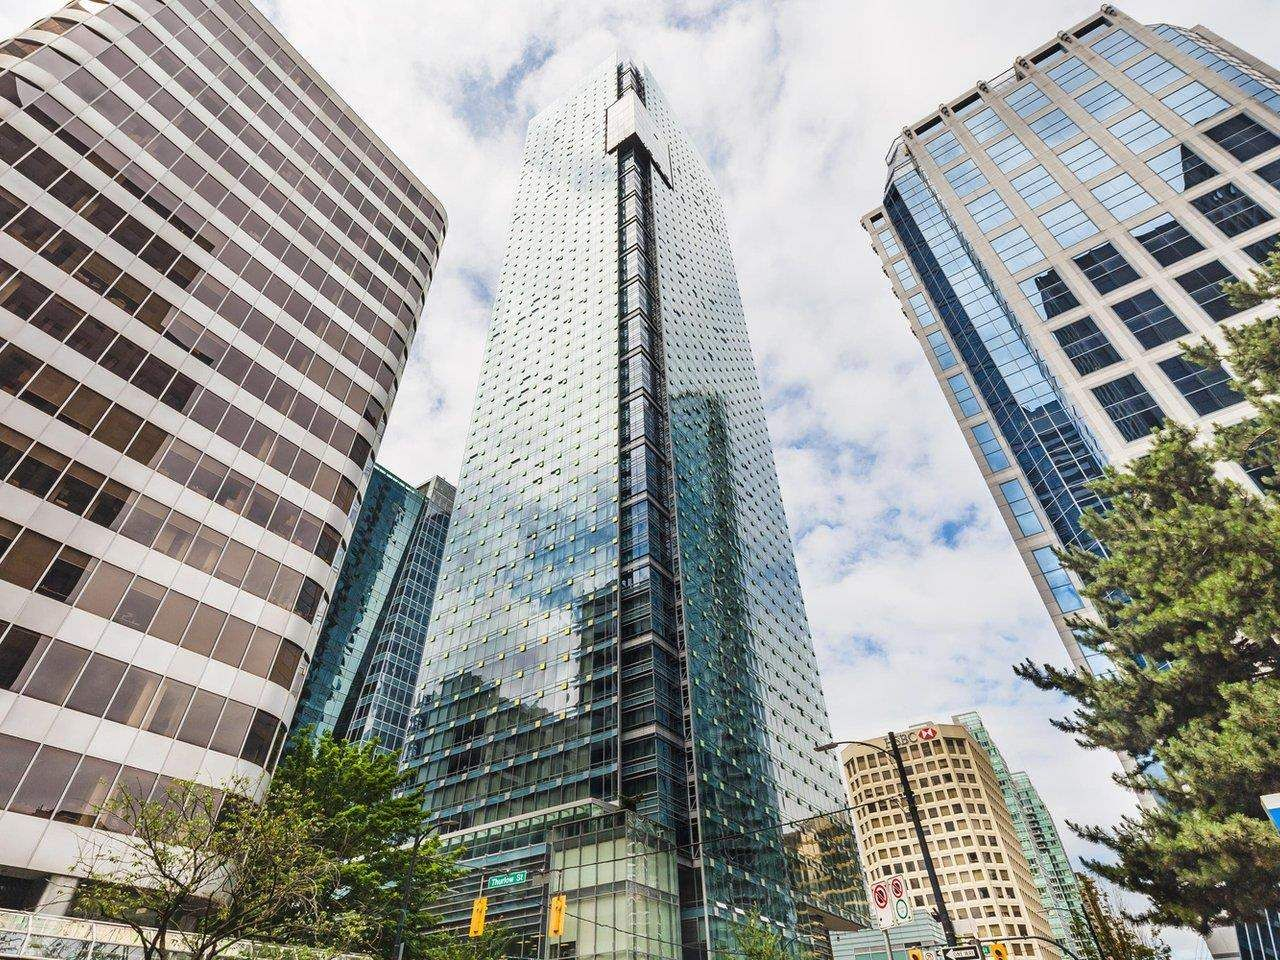 """Main Photo: 2504 1111 ALBERNI Street in Vancouver: West End VW Condo for sale in """"Shangri-La"""" (Vancouver West)  : MLS®# R2602921"""